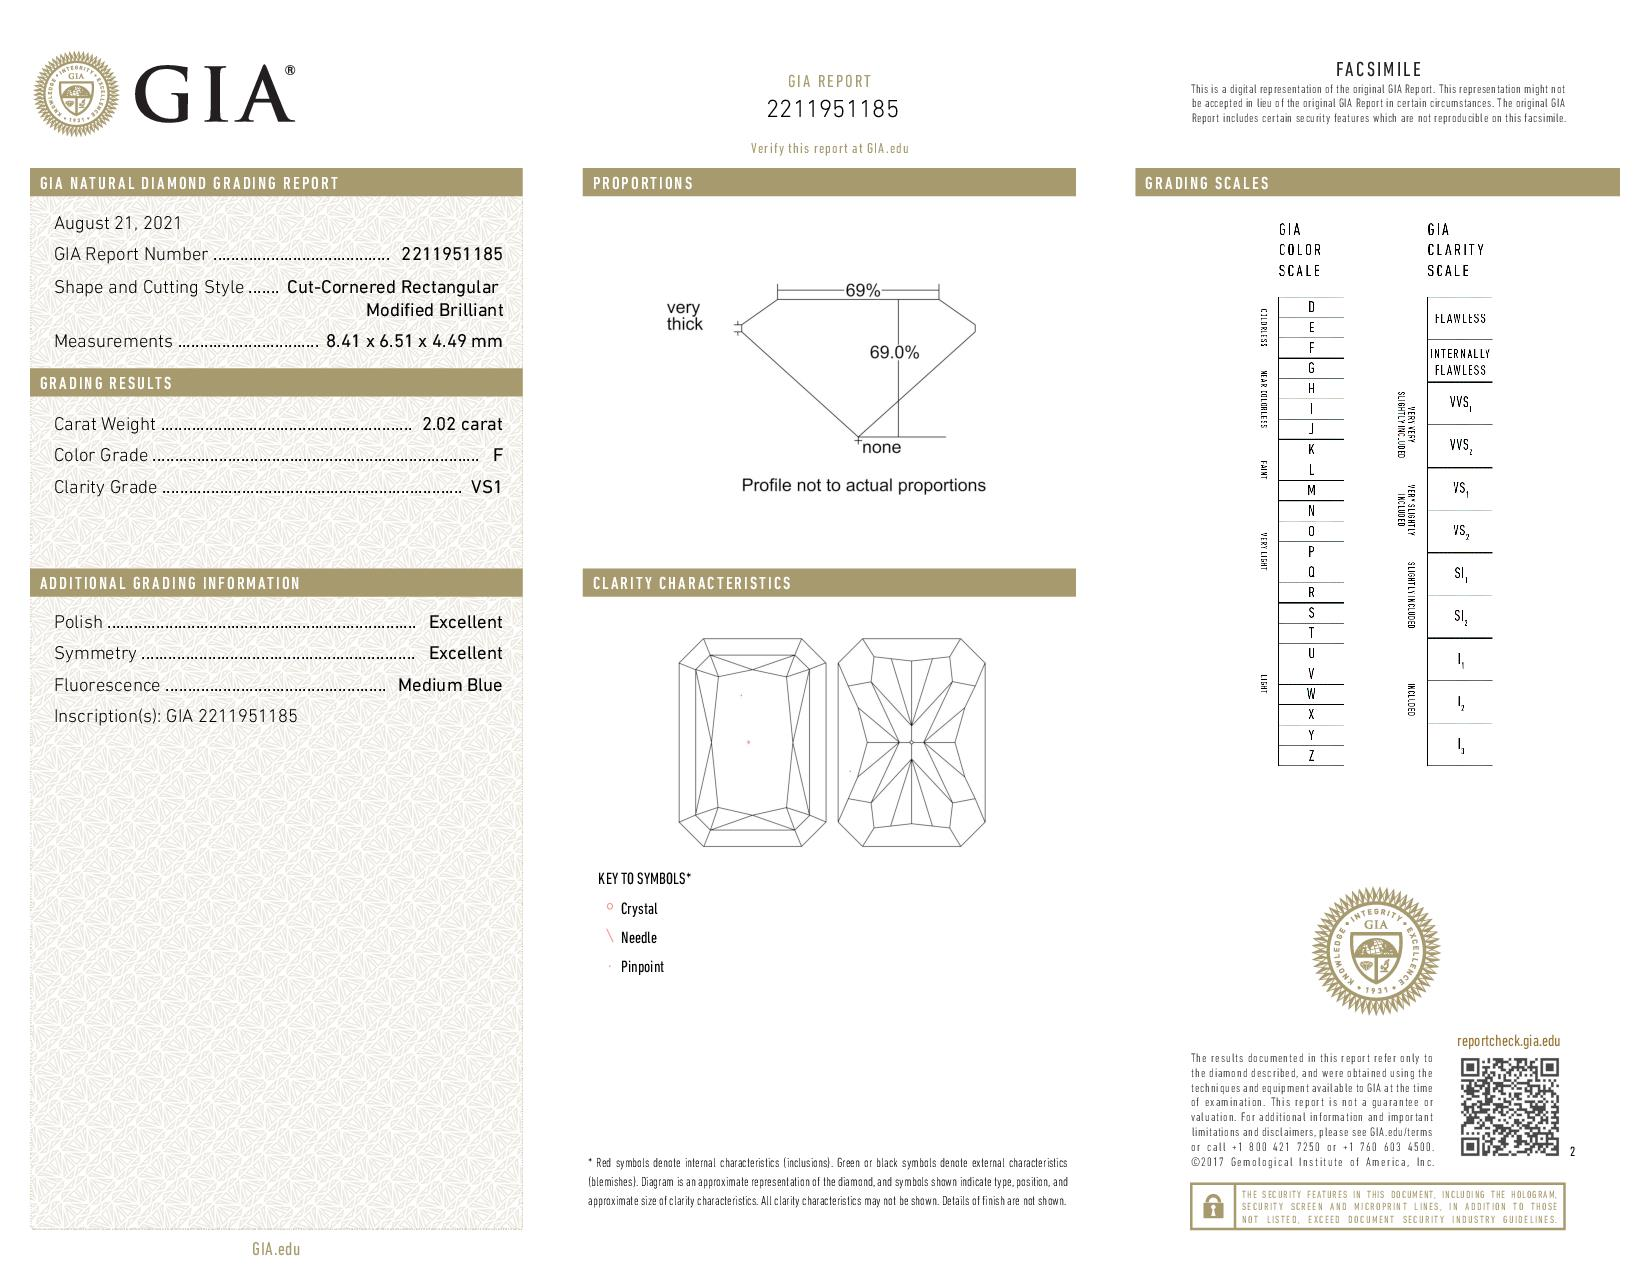 This is a 2.02 carat radiant shape, F color, VS1 clarity natural diamond accompanied by a GIA grading report.